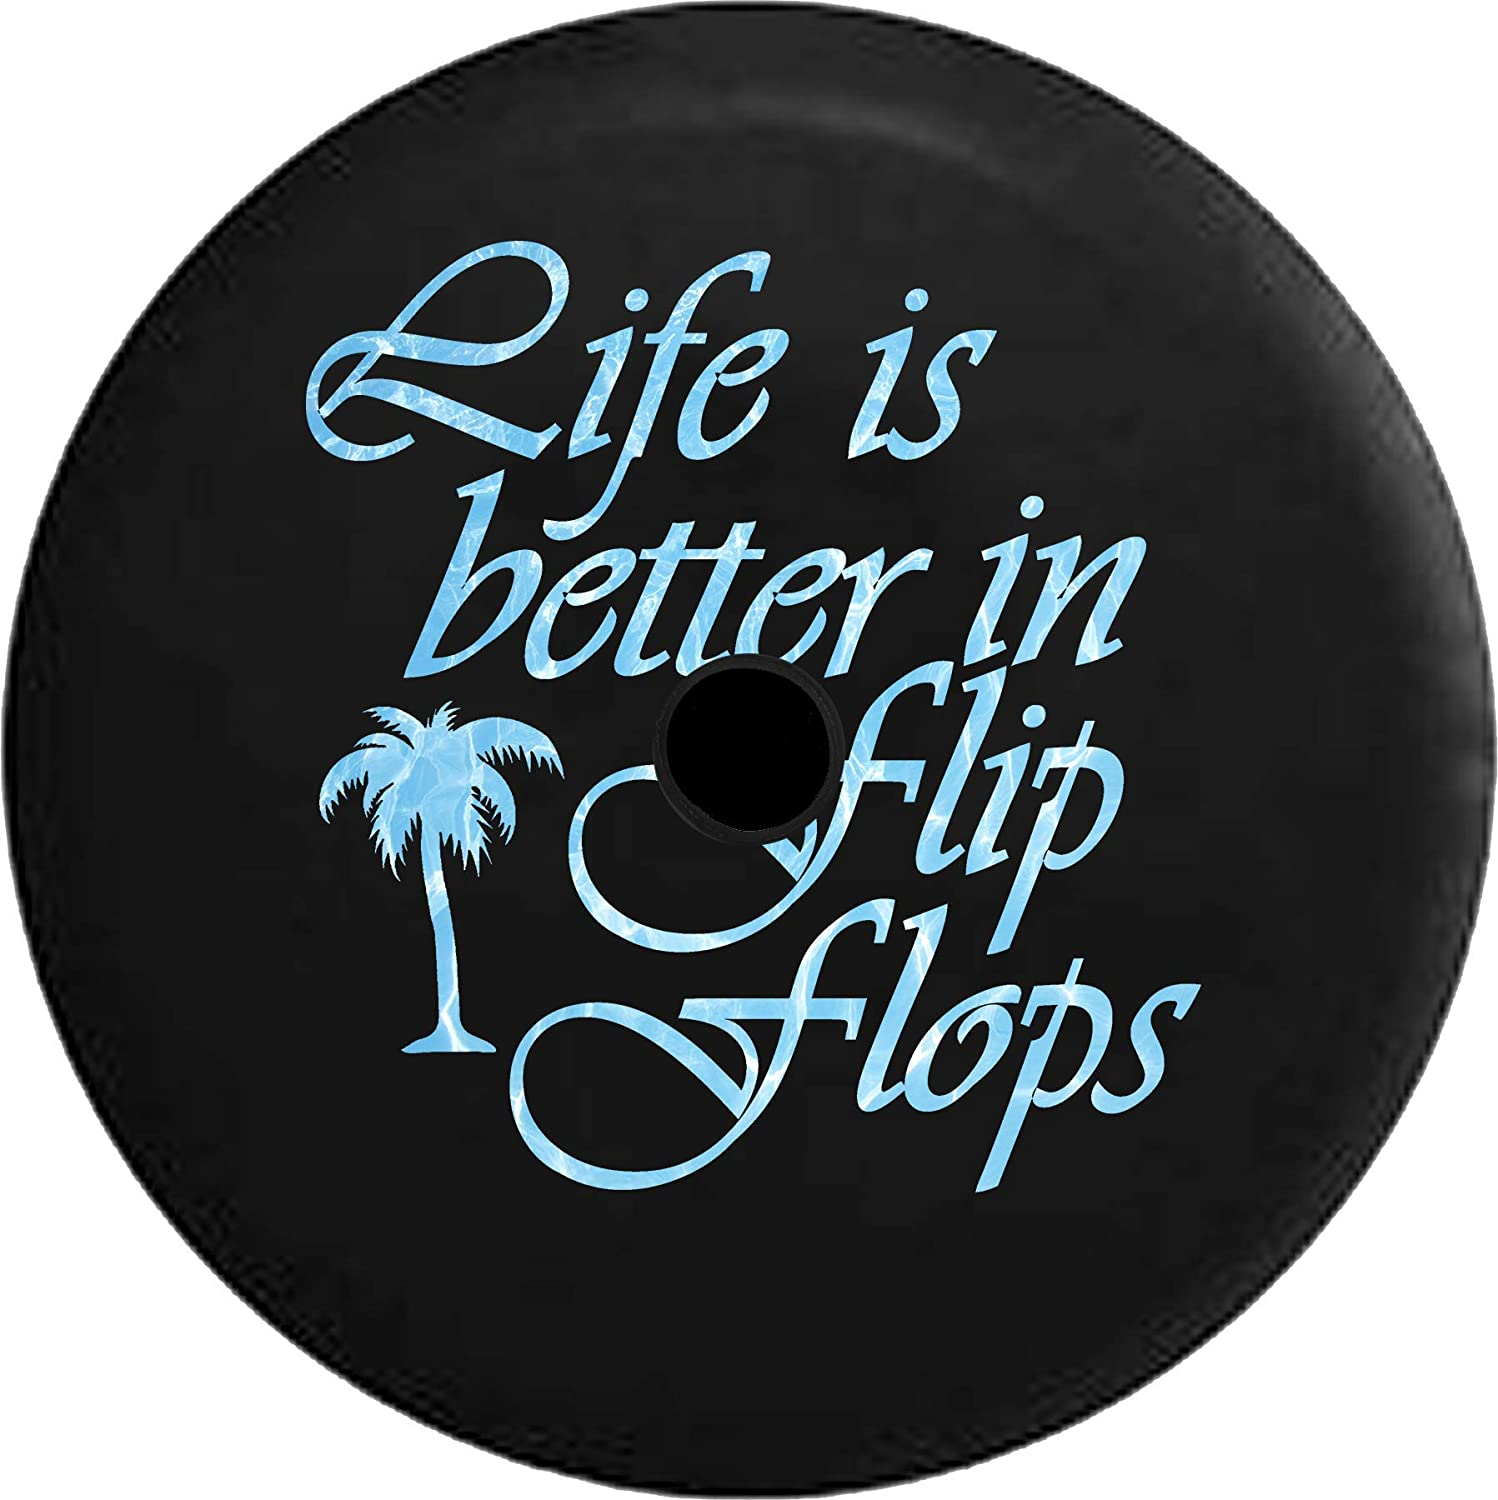 JL Series Jeep Spare Tire Cover Backup Camera Hole Life is Better in Flip Flops Ocean Sea Life Palm Tree Black 32 in